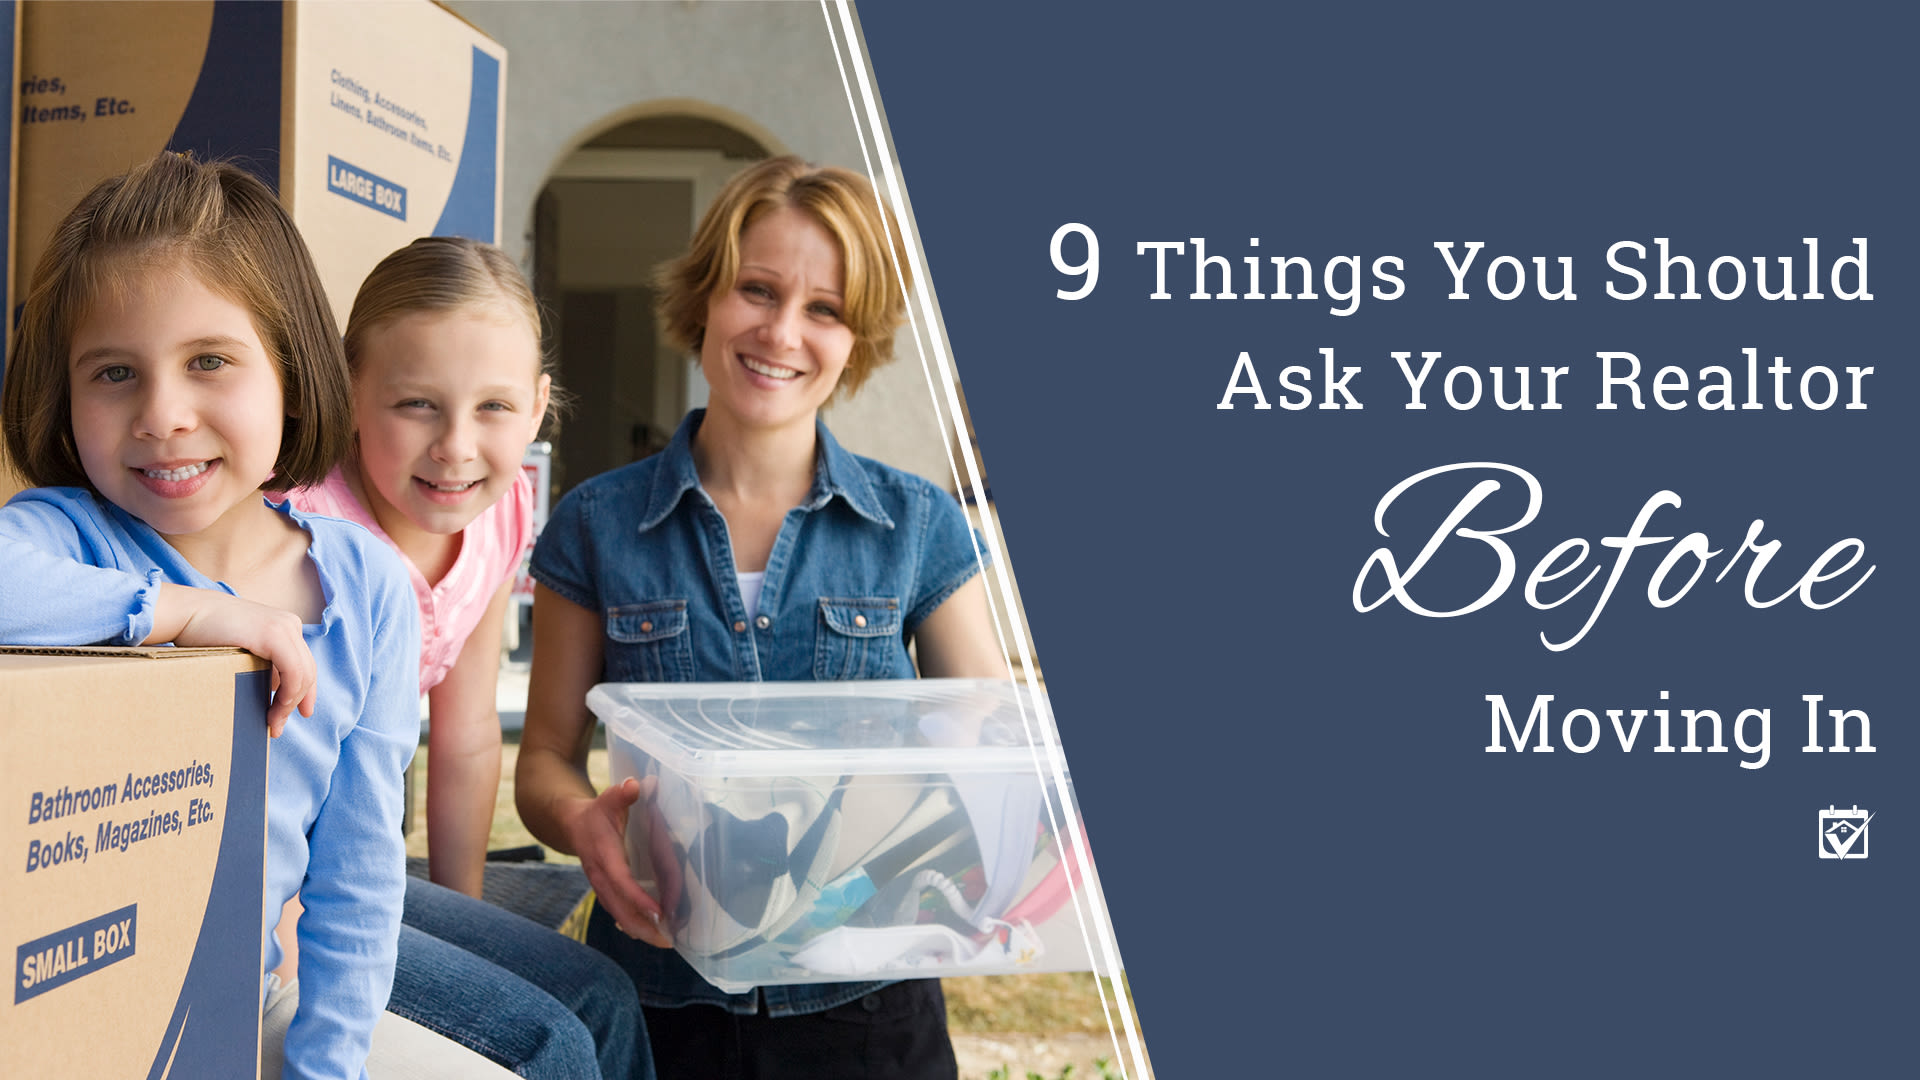 9 Things You Should Ask Your Realtor Before Moving In